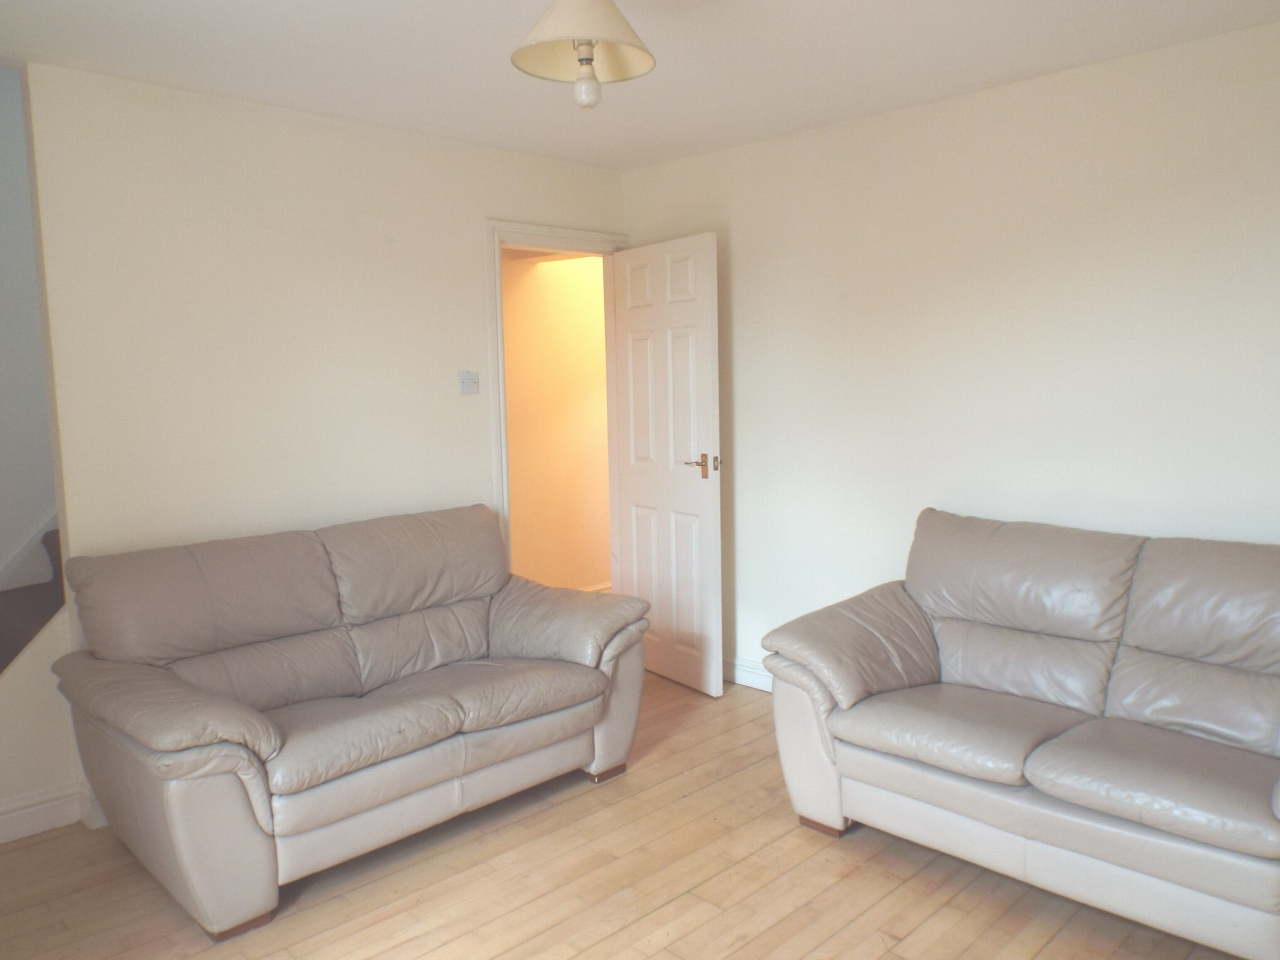 1 bedroom apartment flat/apartment in Chorley - Photograph 2.